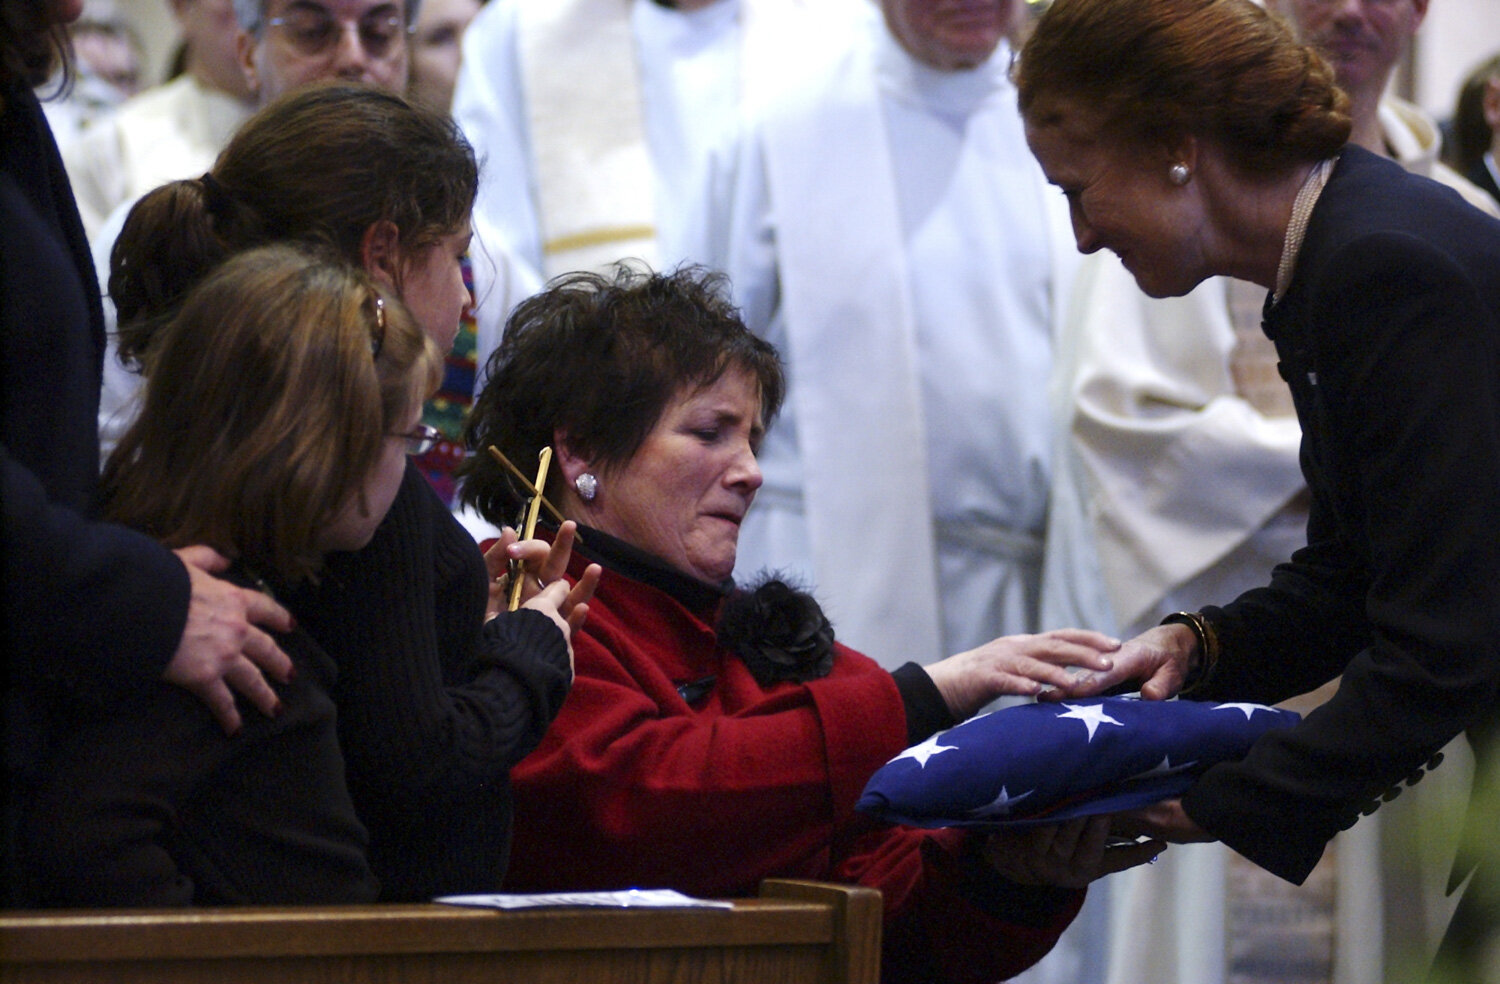 Jane Granville receives her son John's flag from Deputy Secretary of State, Henrietta Fore at the conclusion of John Granville's funeral at St. John Vianney Church in Orchard Park.  Granville, a Canisius High School graduate and South Buffalo native, was killed in the Sudanese capitol of Khartoum in 2008.